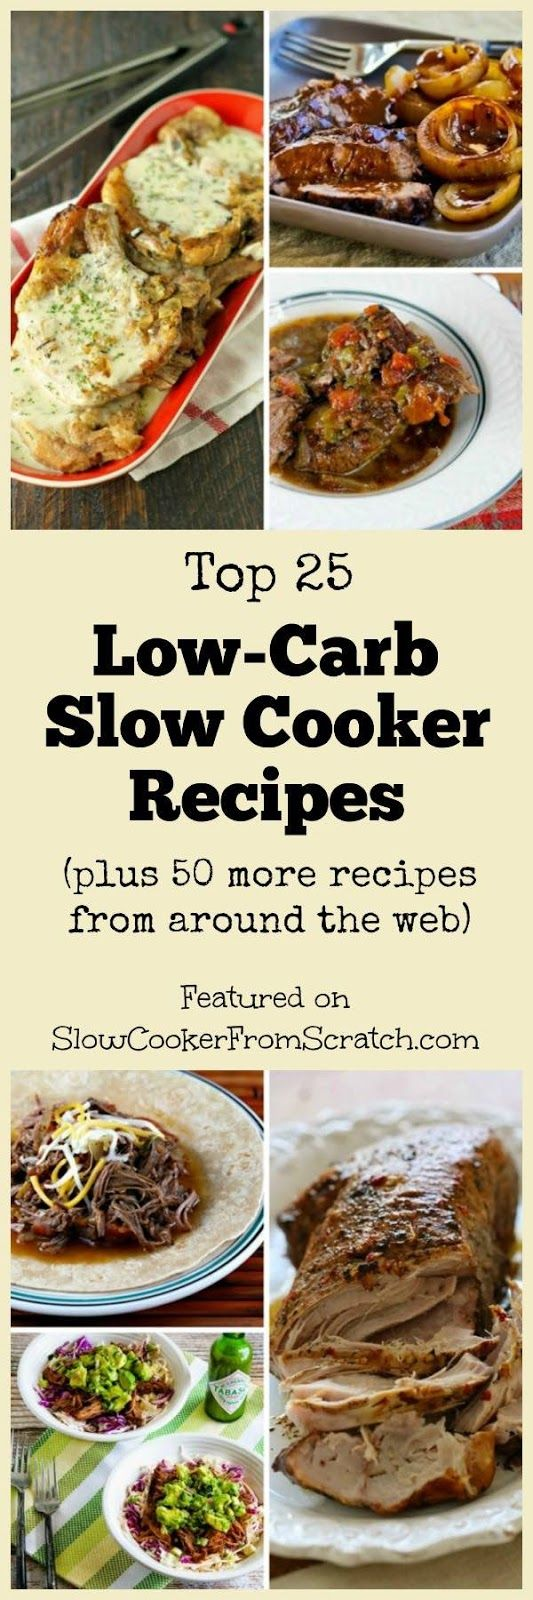 Here are the Top 25 Low-Carb Slow Cooker Dinners from SlowCookerFromScratch.com, plus lots more low-carb slow cooker recipes from around the web. This post also links to the low-carb slow cooker recipes photo index on Slow Cooker from Scratch, so it's a MUST PIN if you're eating low-carb!: